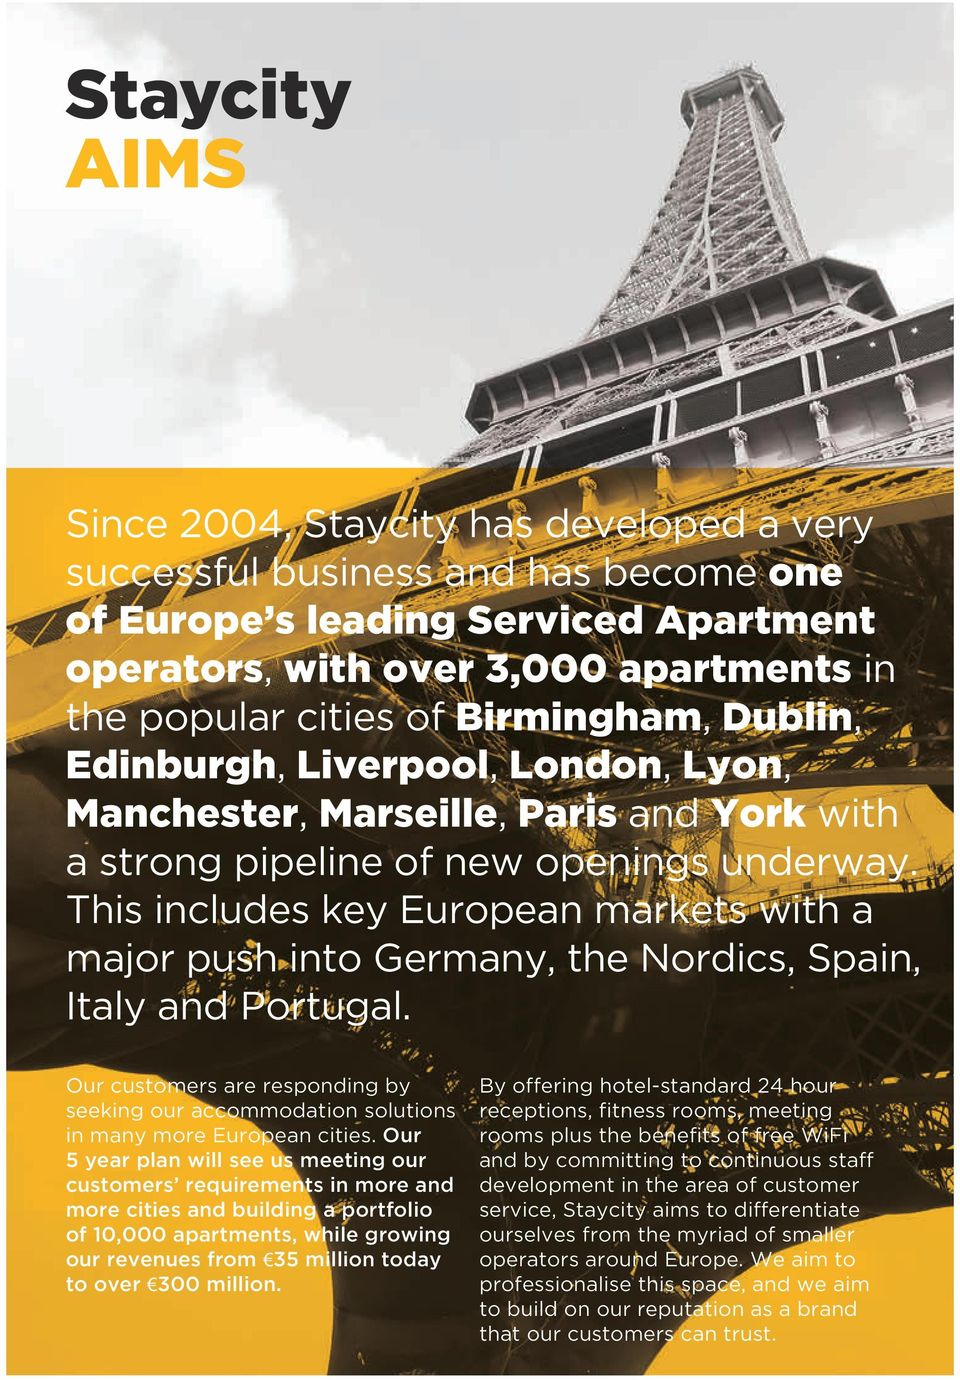 This includes key European markets with a major push into Germany, the Nordics, Spain, Italy and Portugal.